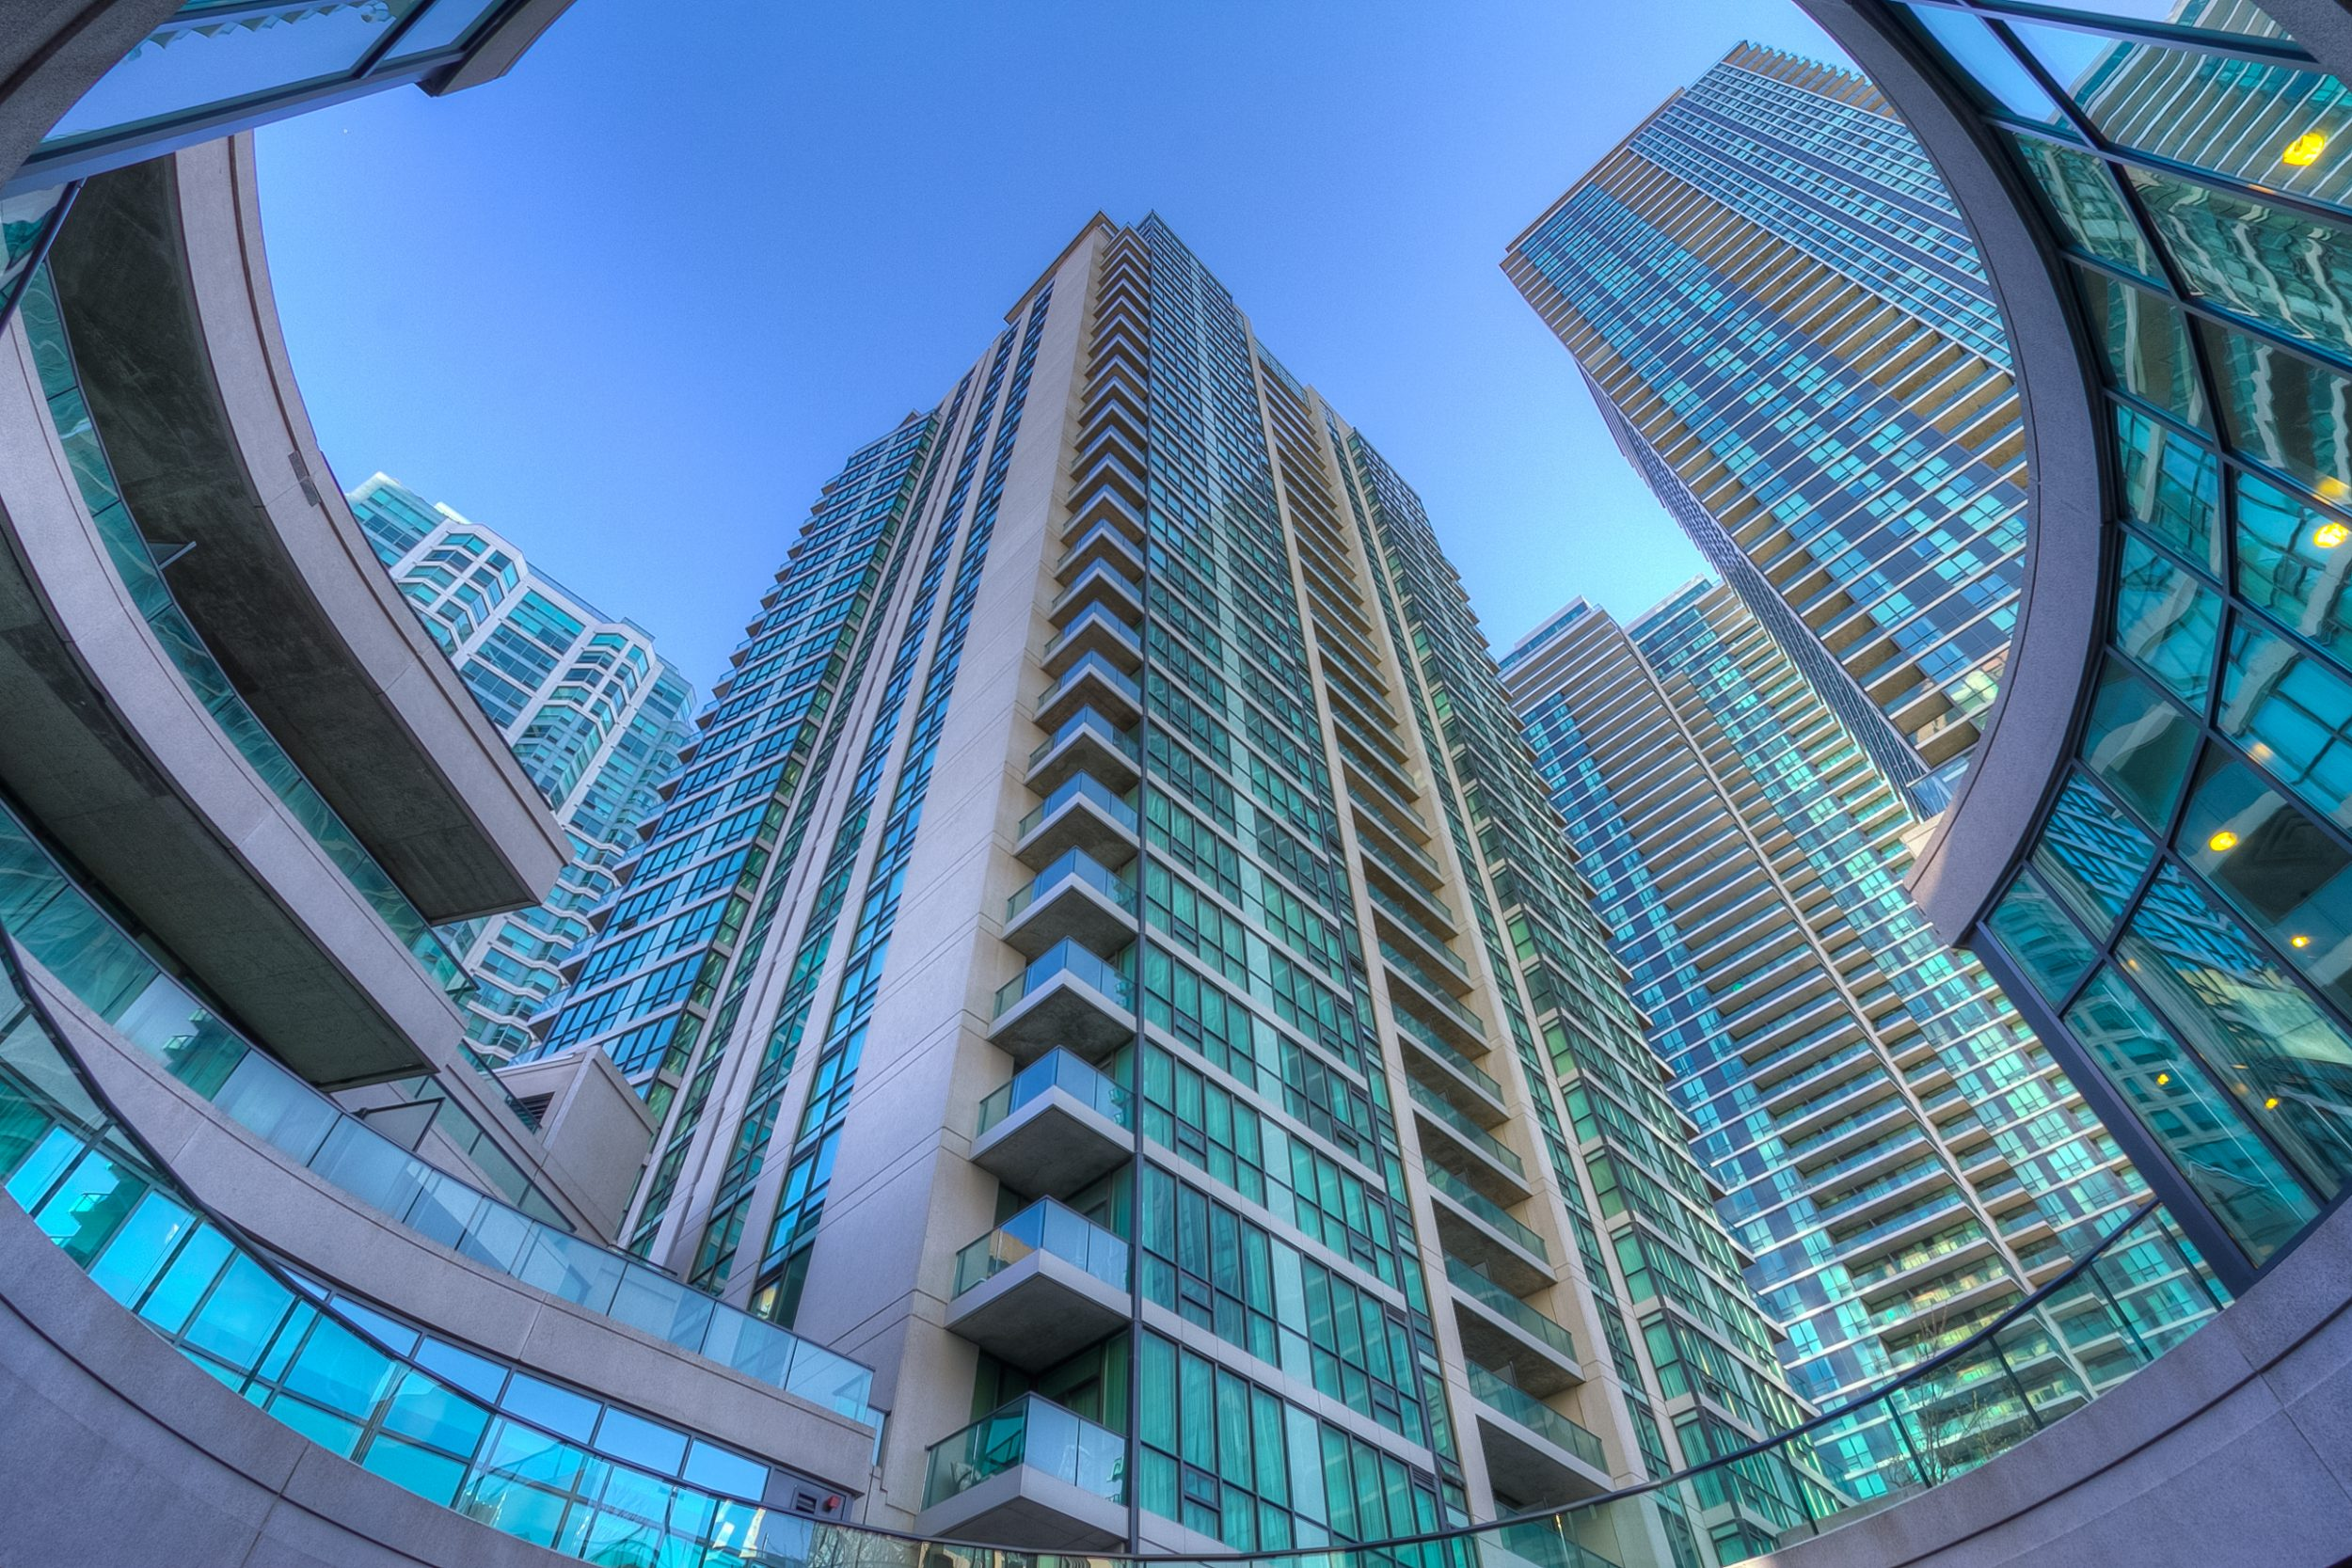 SUITE 402 AT 12 YONGE STREET - LIVE INSPIRED AT THE PINNACLE CENTRE TORONTO